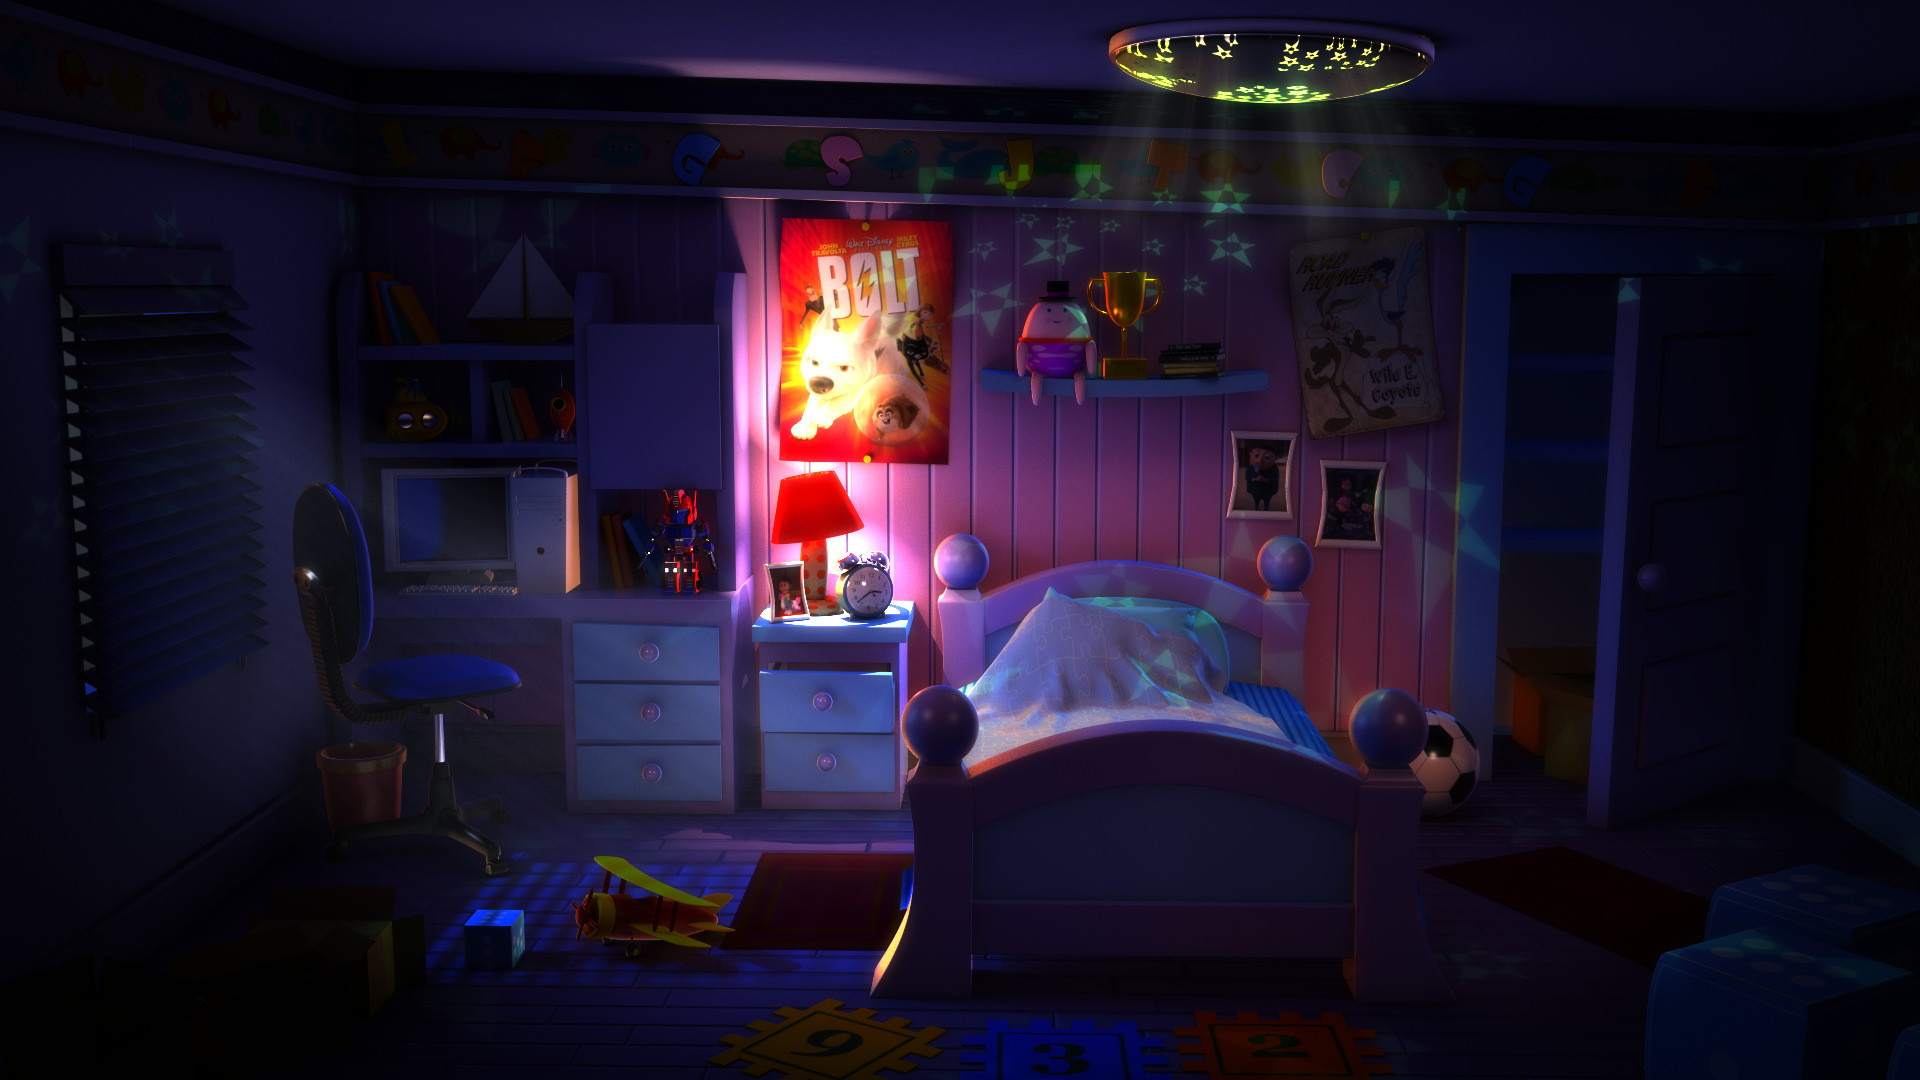 Kids Room At Night 2